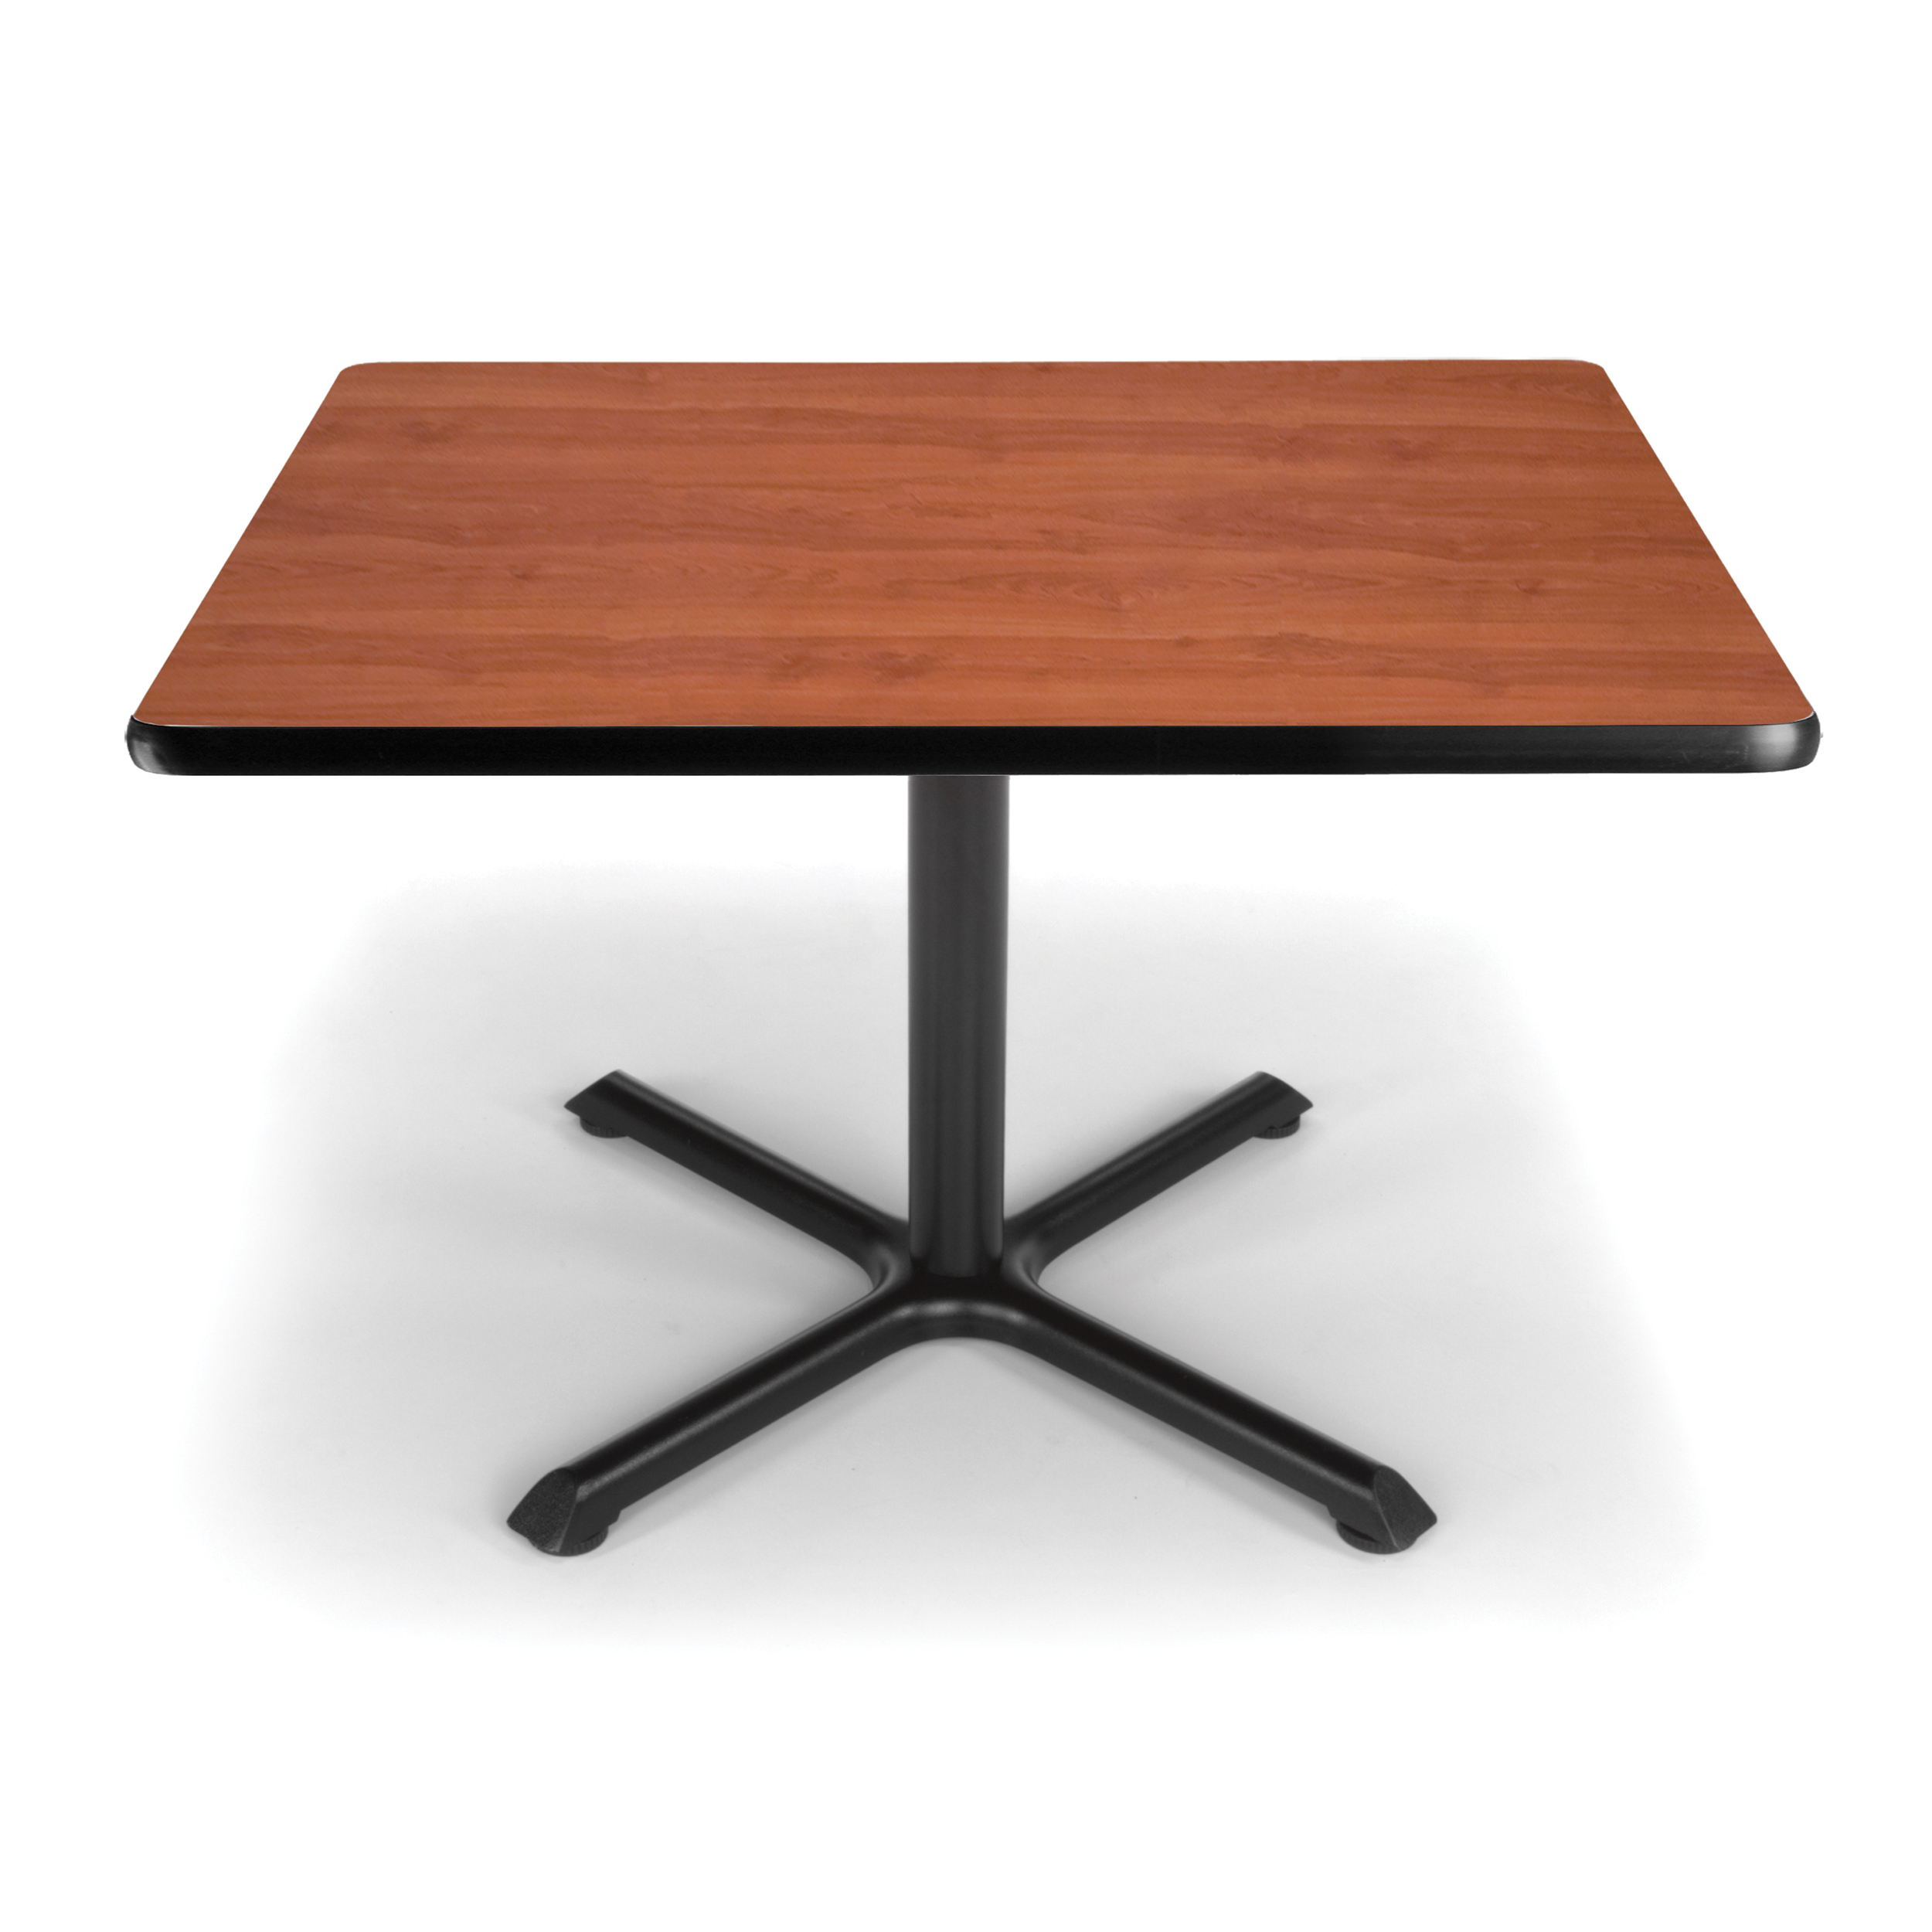 "60 Inch Square Pedestal Table: OFM Model XT36SQ 36"" Multi-Purpose Square Table With X-Style Pedestal Base, Cherry"